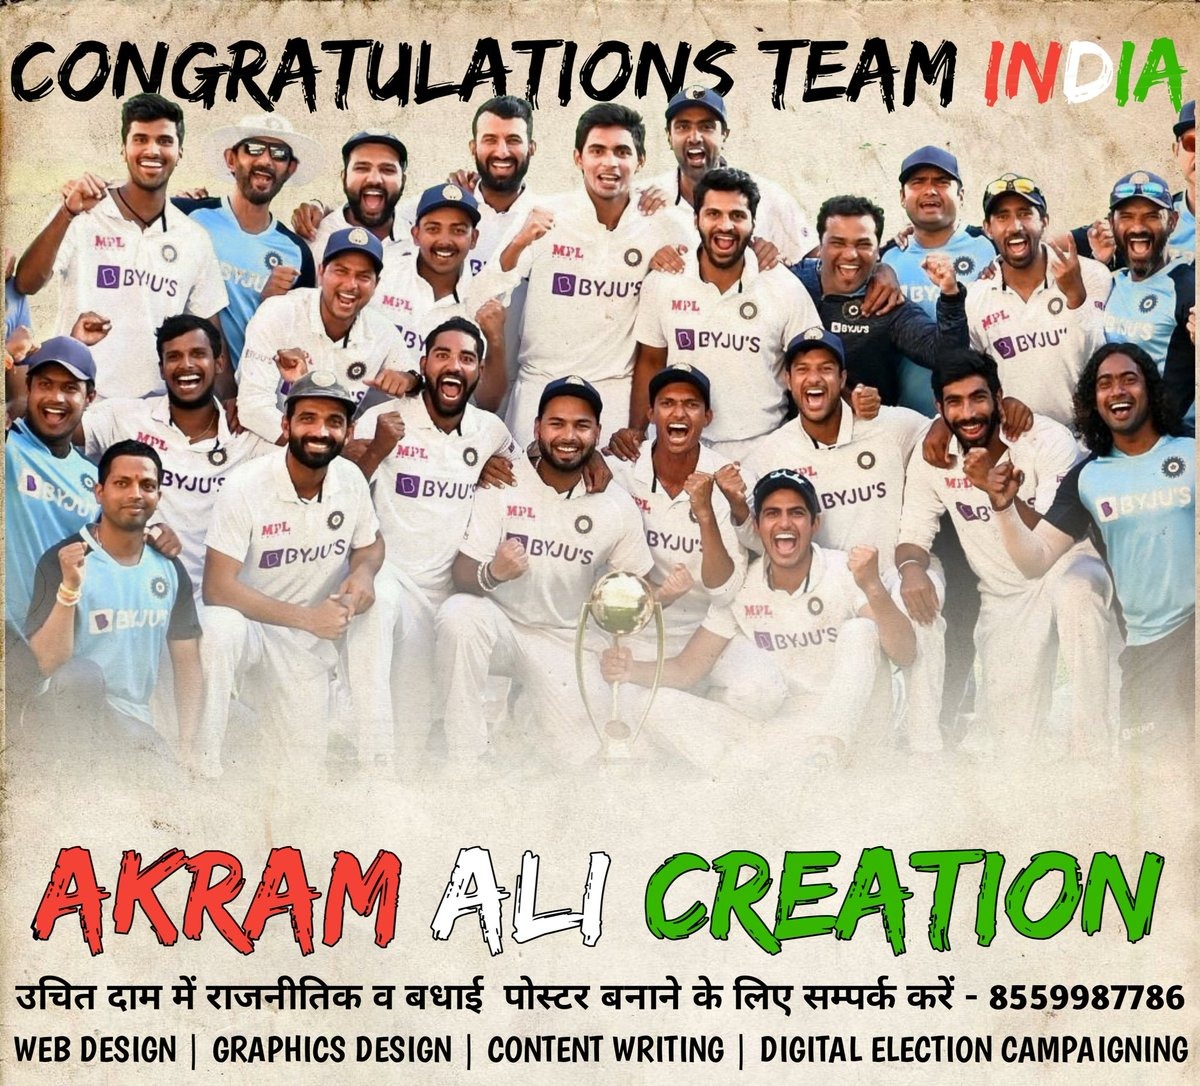 Congratulations to #TeamIndia for their fantastic Test Series victory in Australia.   The final match exemplified the importance of team work with every player contributing to this historic win.   Delighted to see the brilliant performance of our young players!   #INDvsAUS